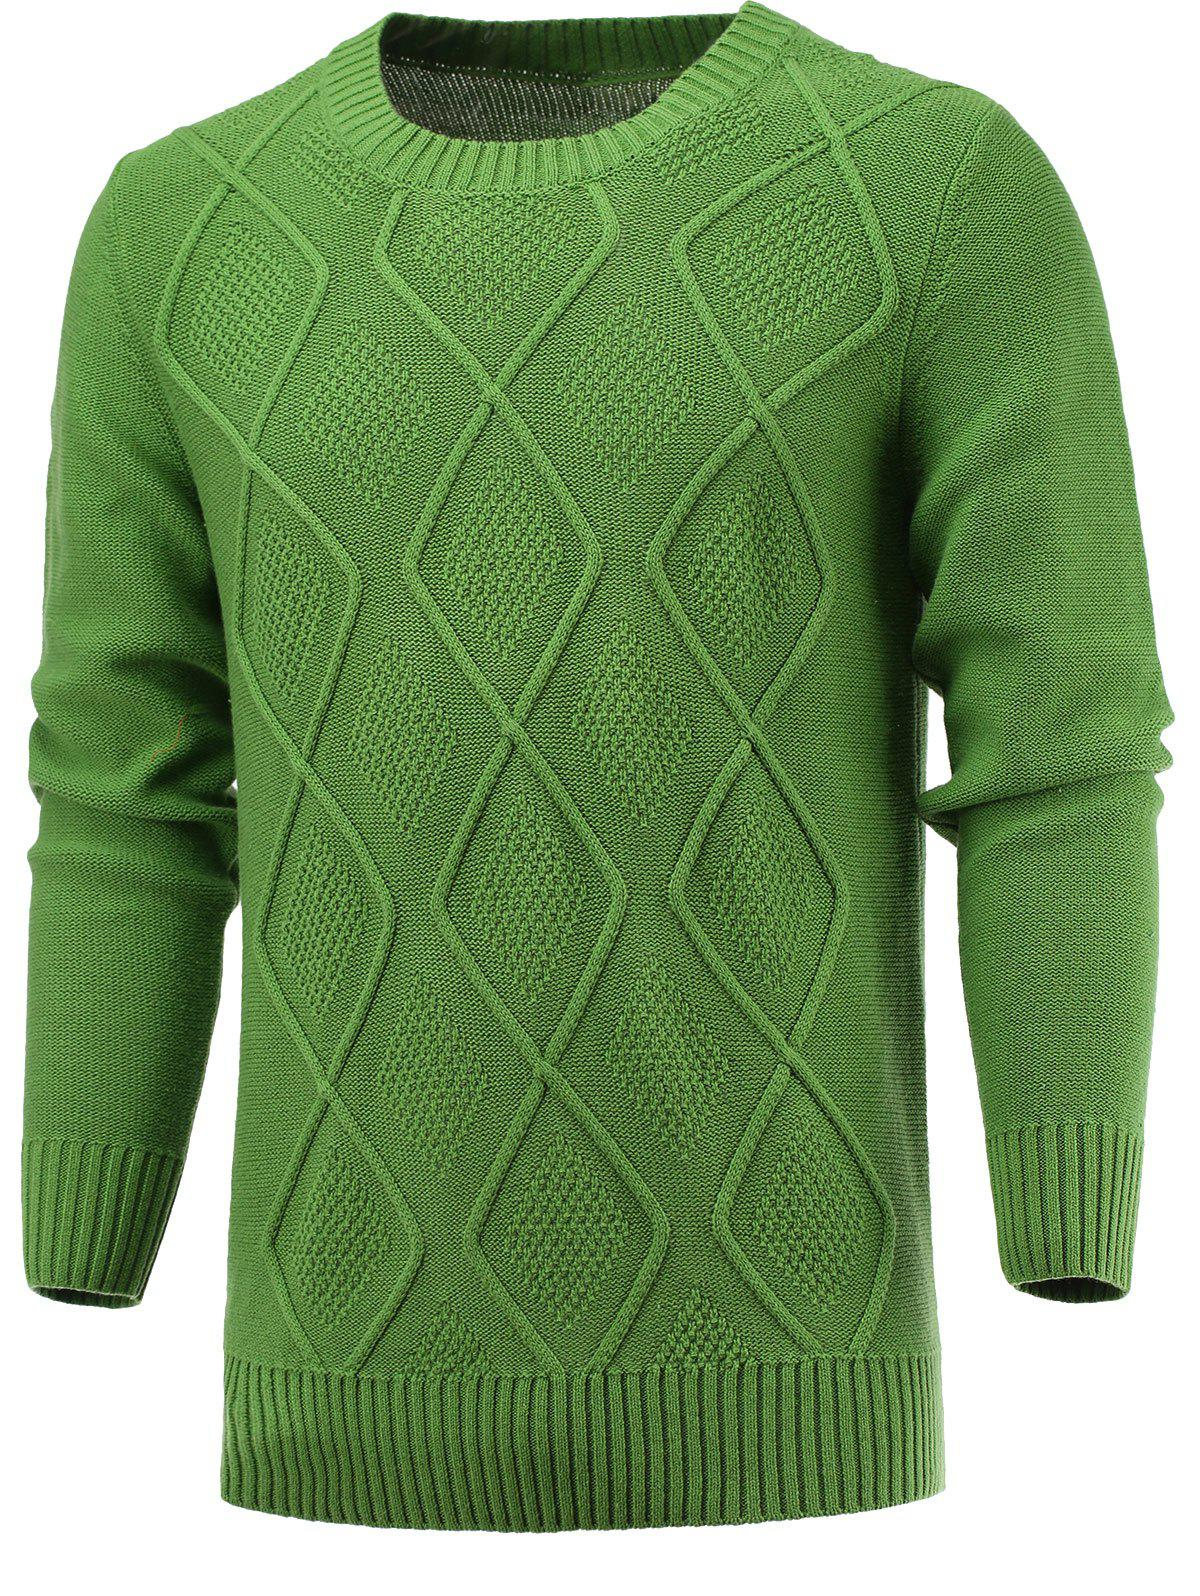 Round Neck Geometric Knitted Sweater